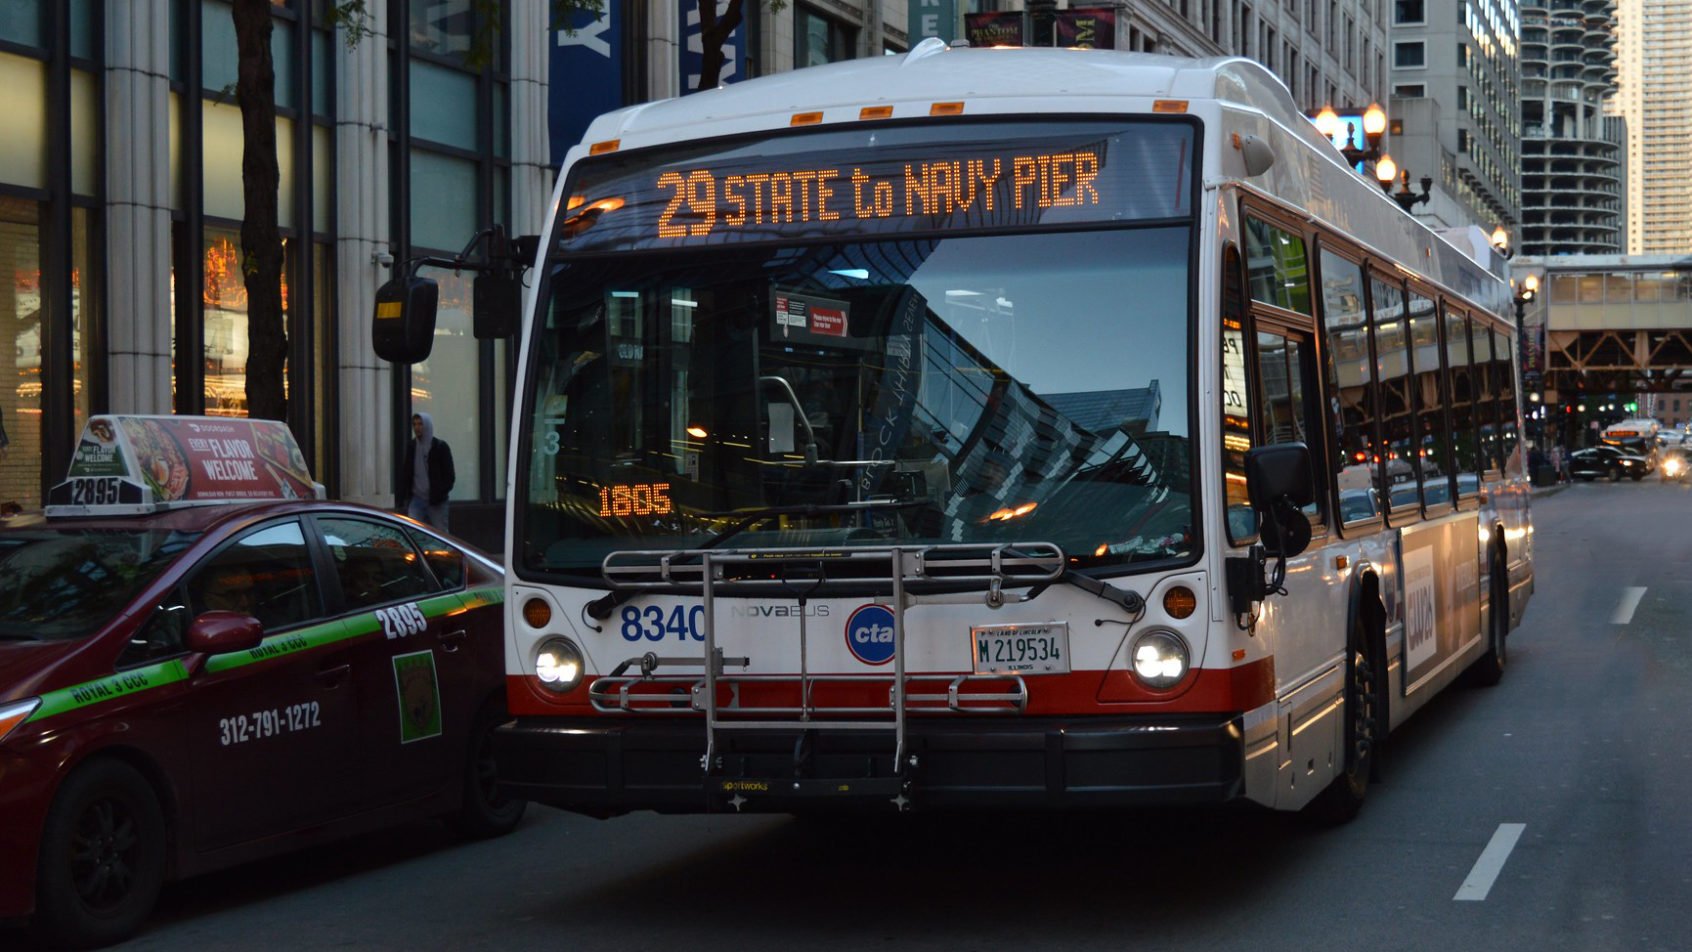 Nova Bus receives approval from the Chicago Transit Authority for the purchase of up to 600 buses